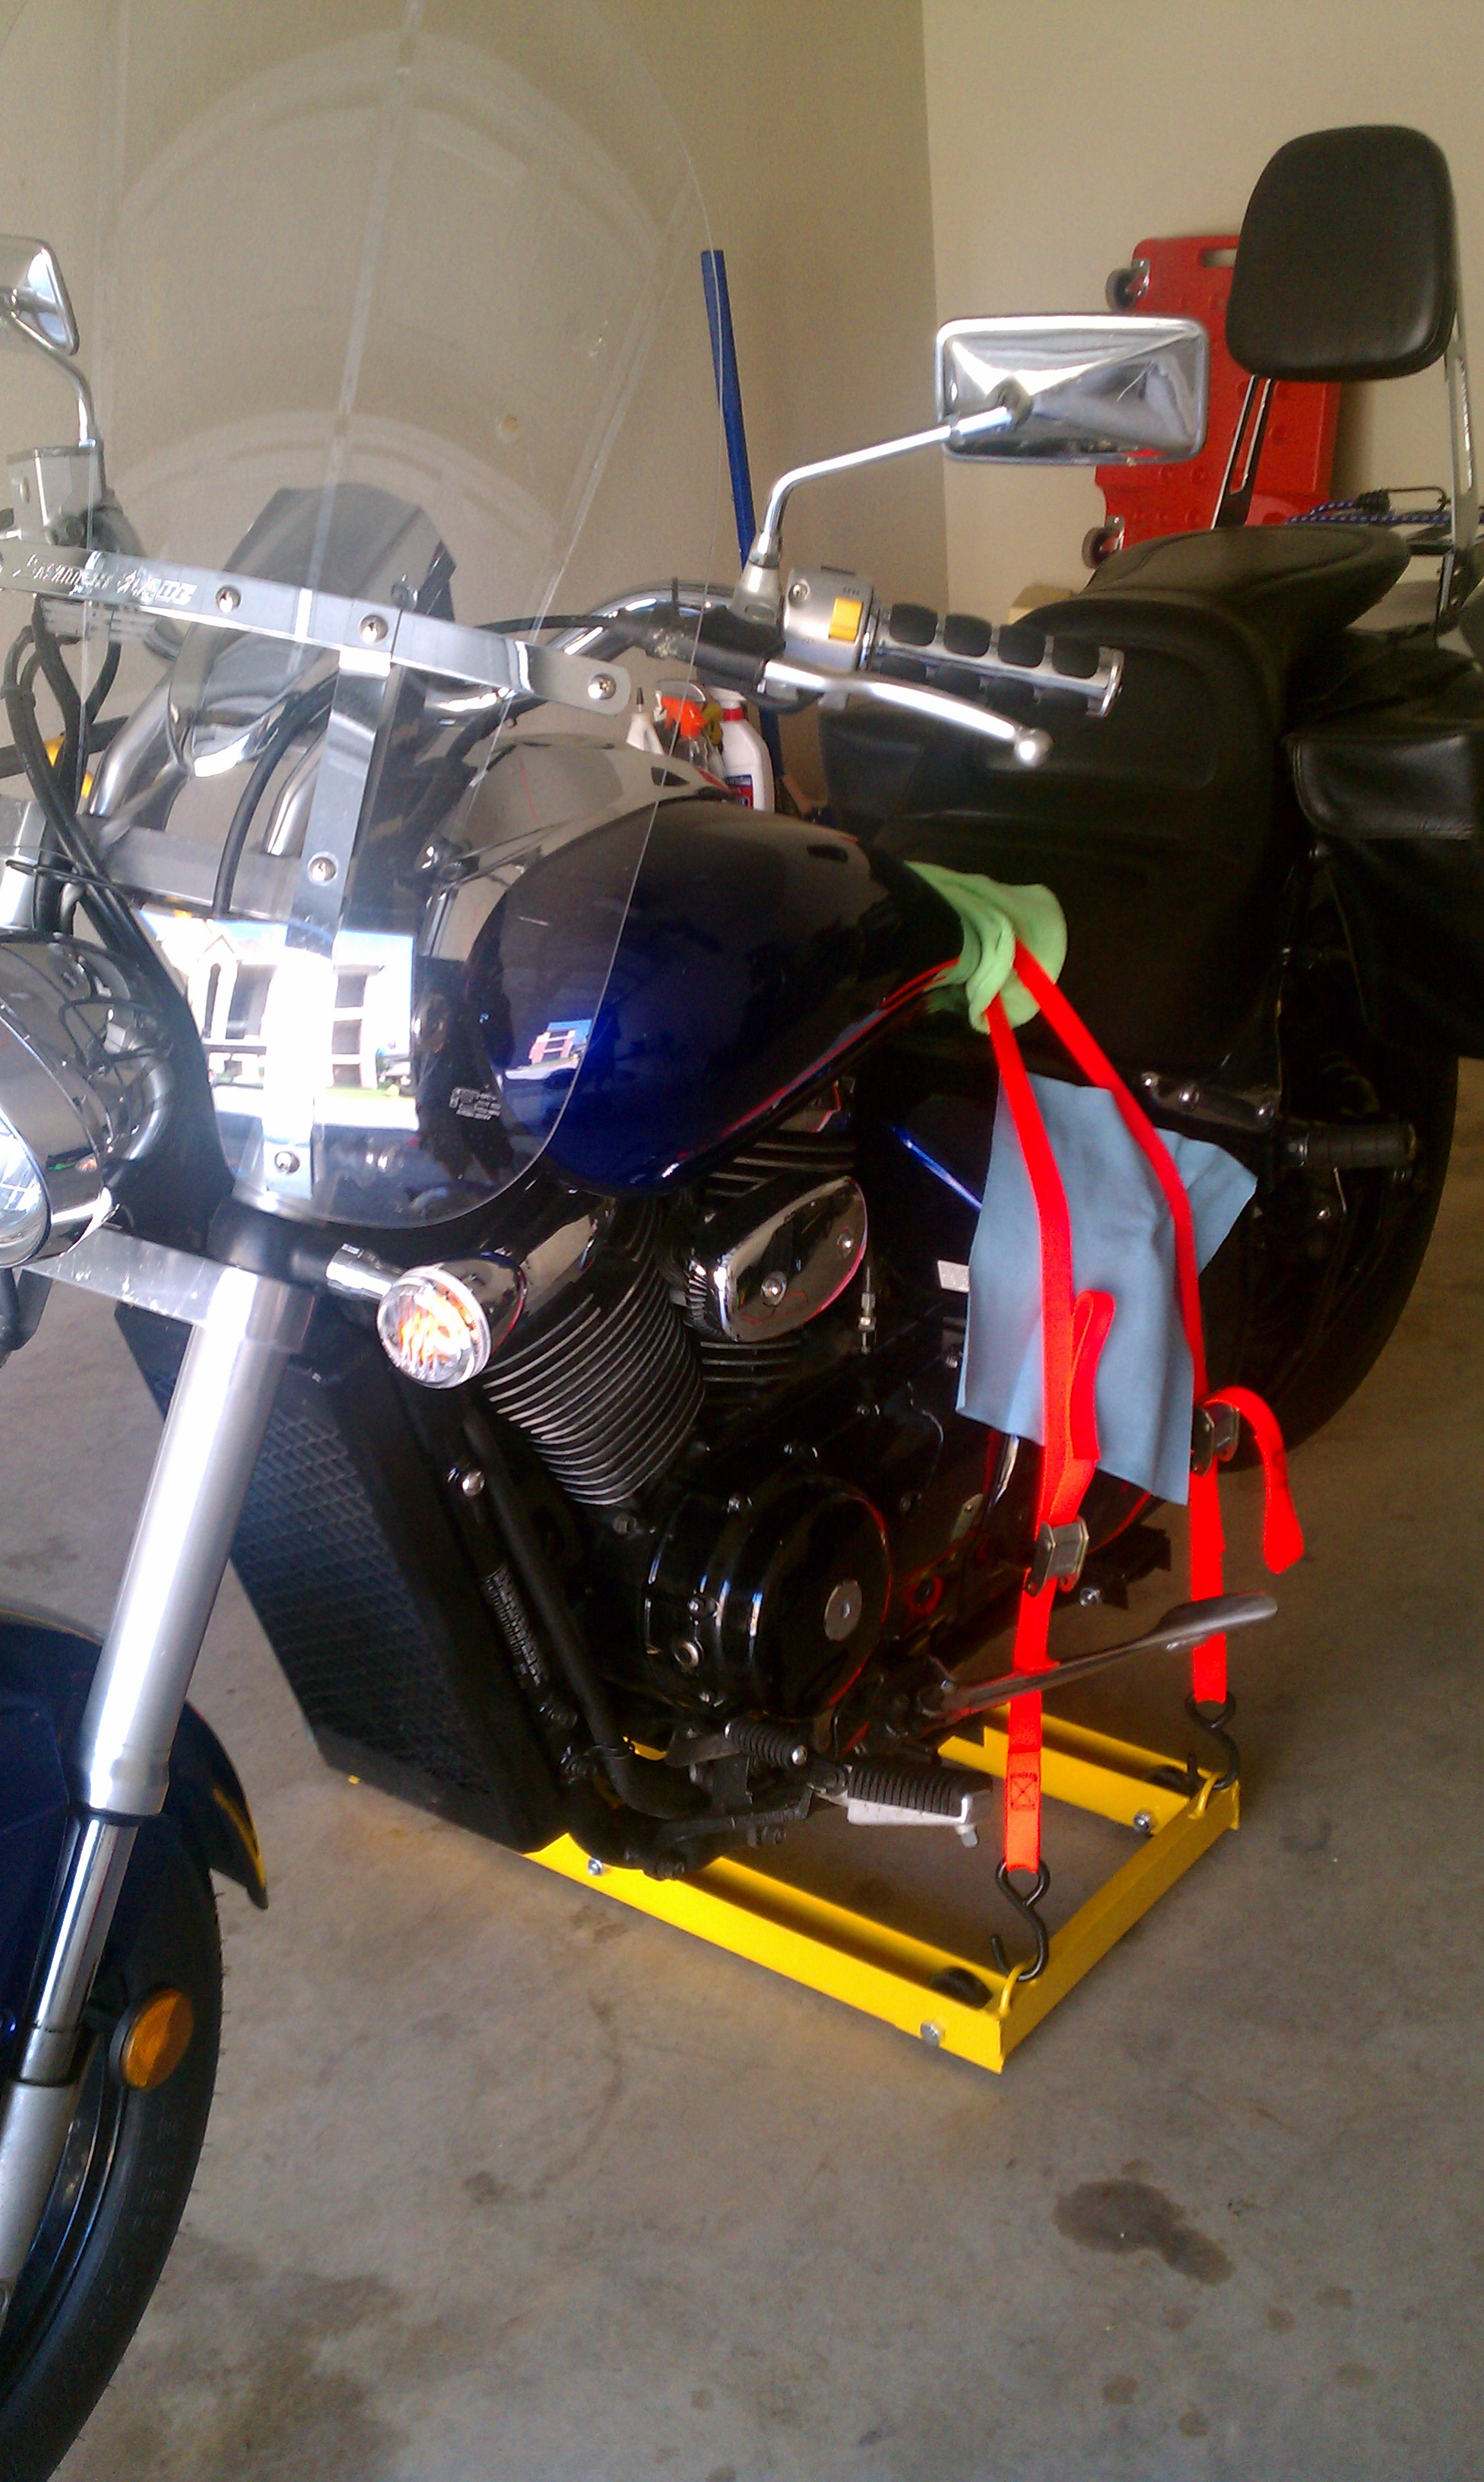 Replacing Fork Seals 2005 Boulevard M50-strapped-down.jpg